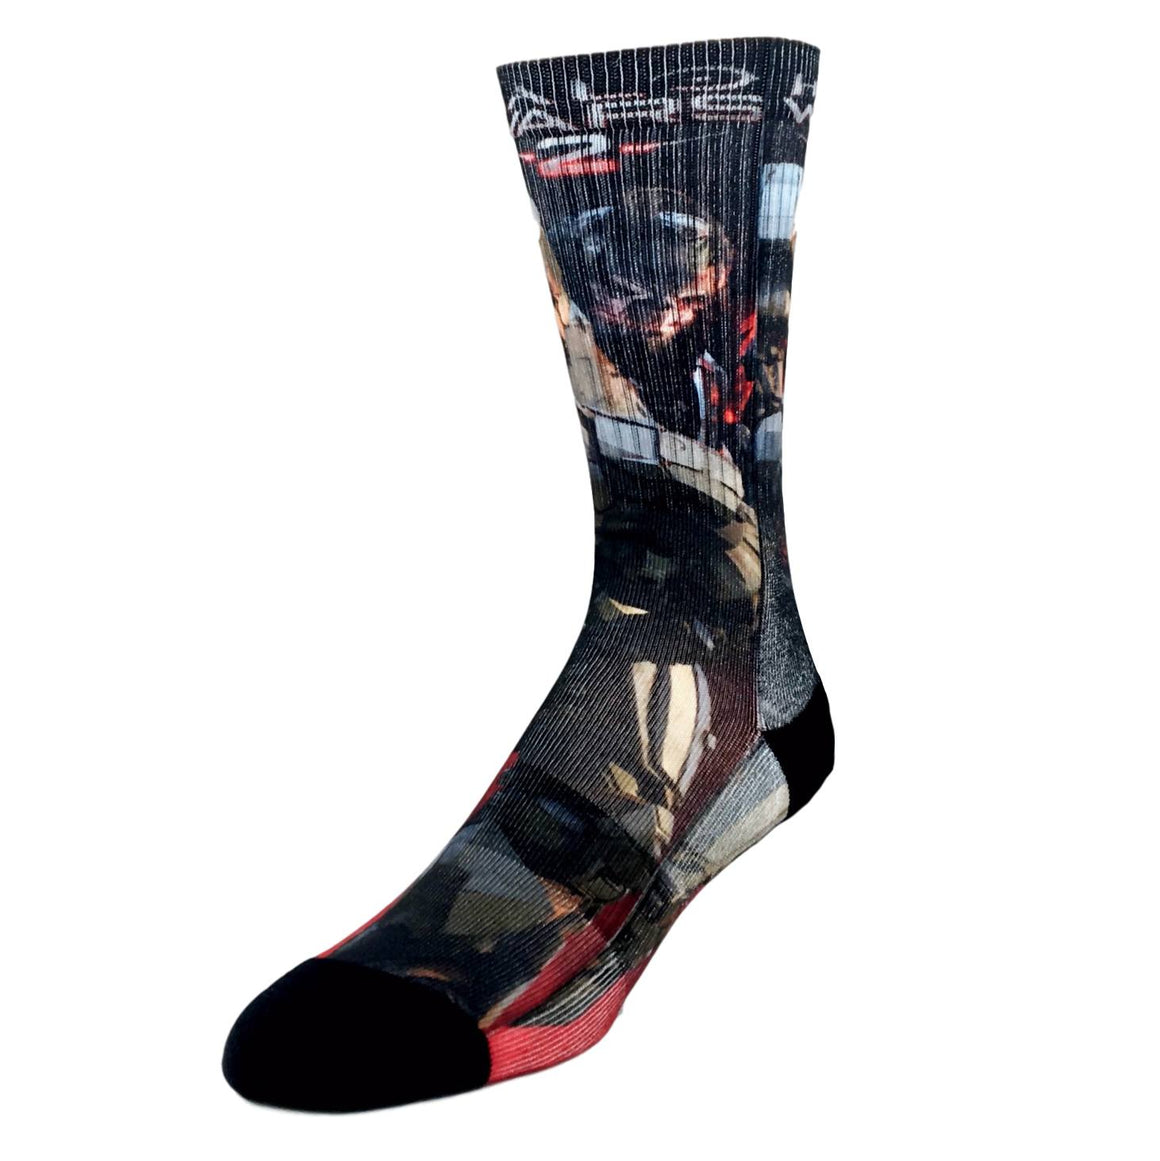 Halo Wars 2 Printed Socks - The Sock Spot